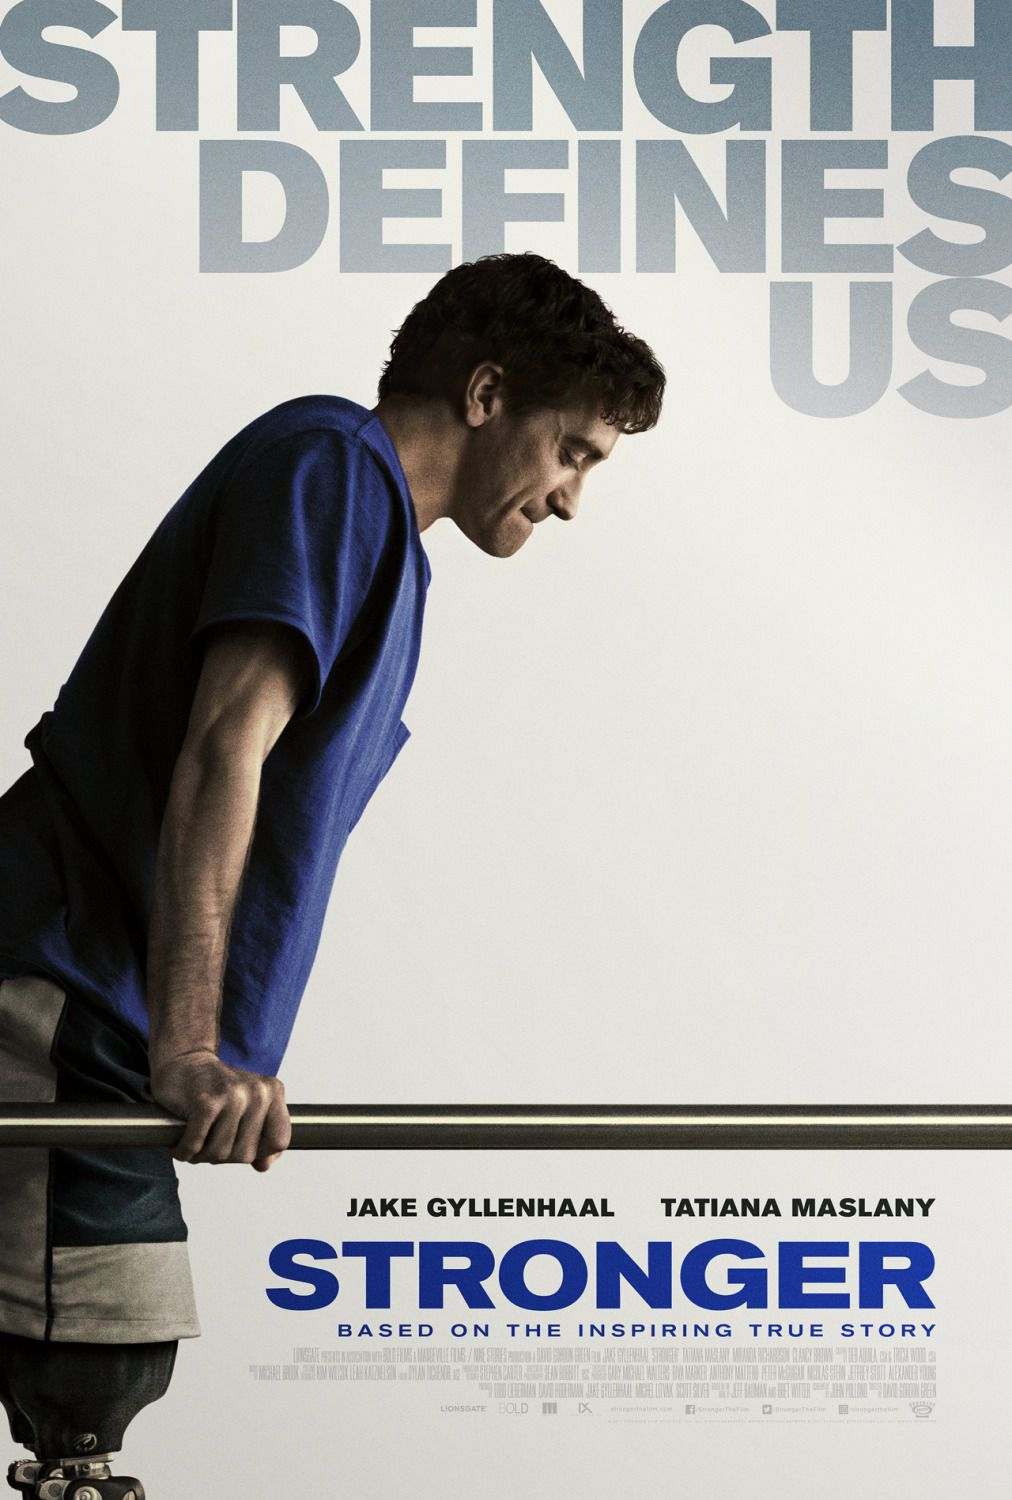 Stronger based on the inspiring true story - strength defines us - Jake Gyllenhaal - Tatiana Maslany